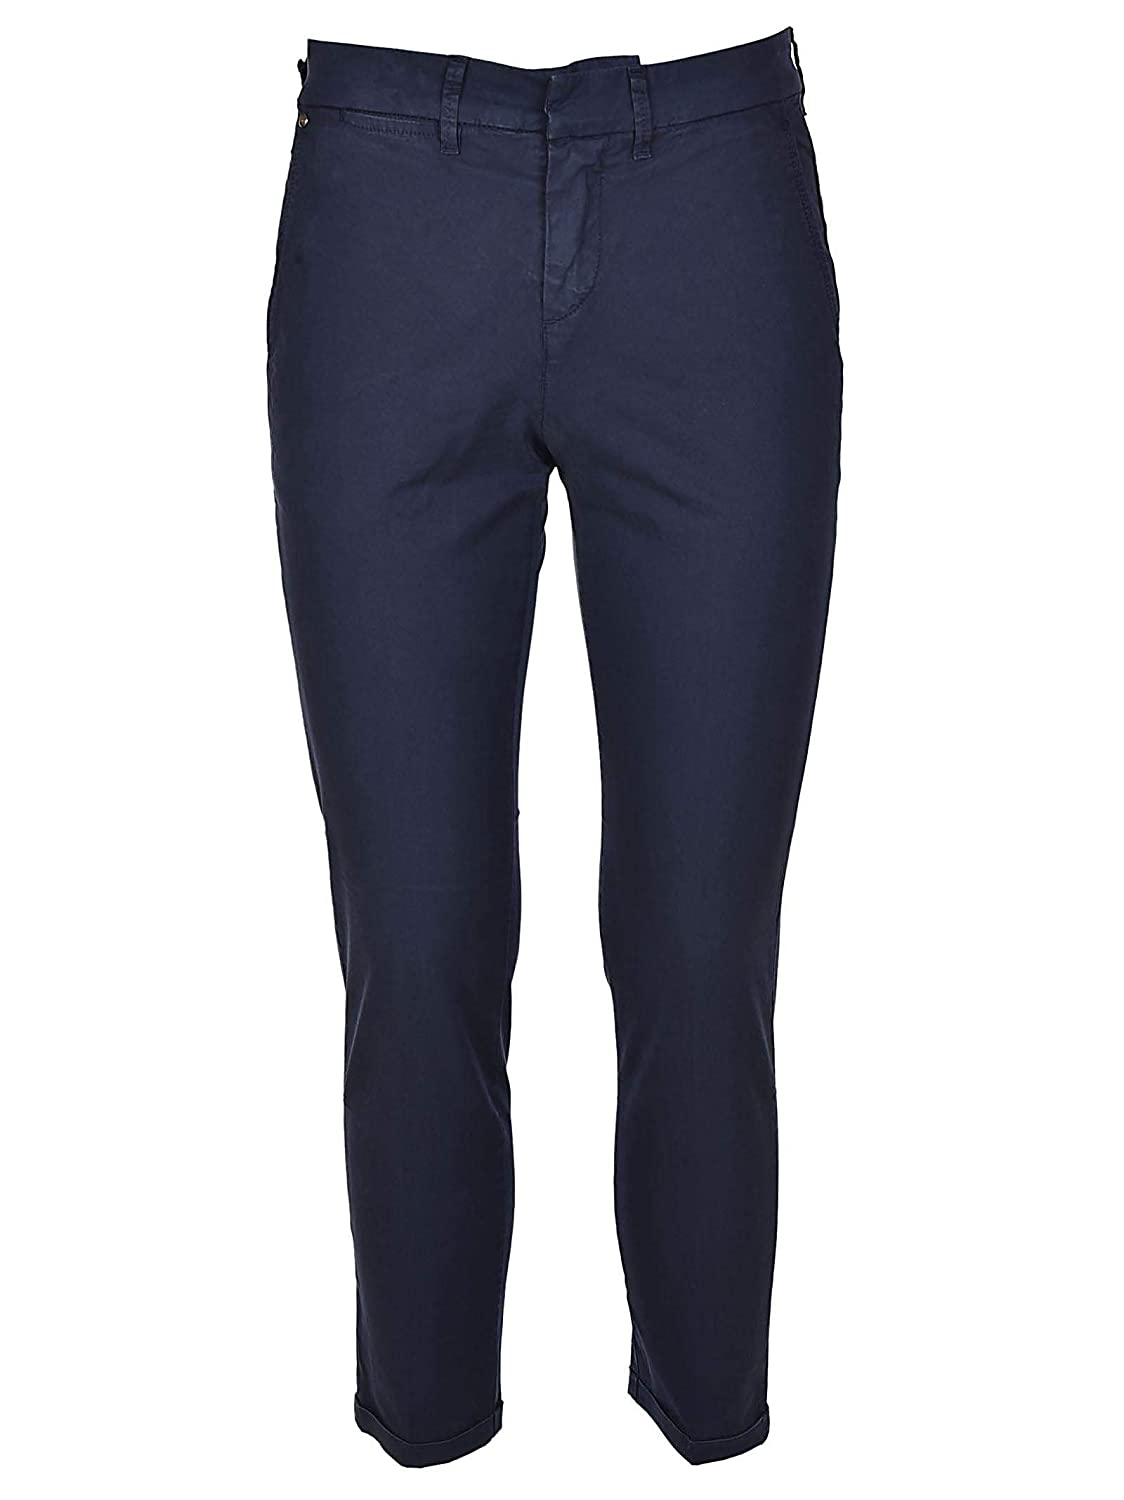 fay Mens NTM8636187TGURU801 Blue Cotton Pants